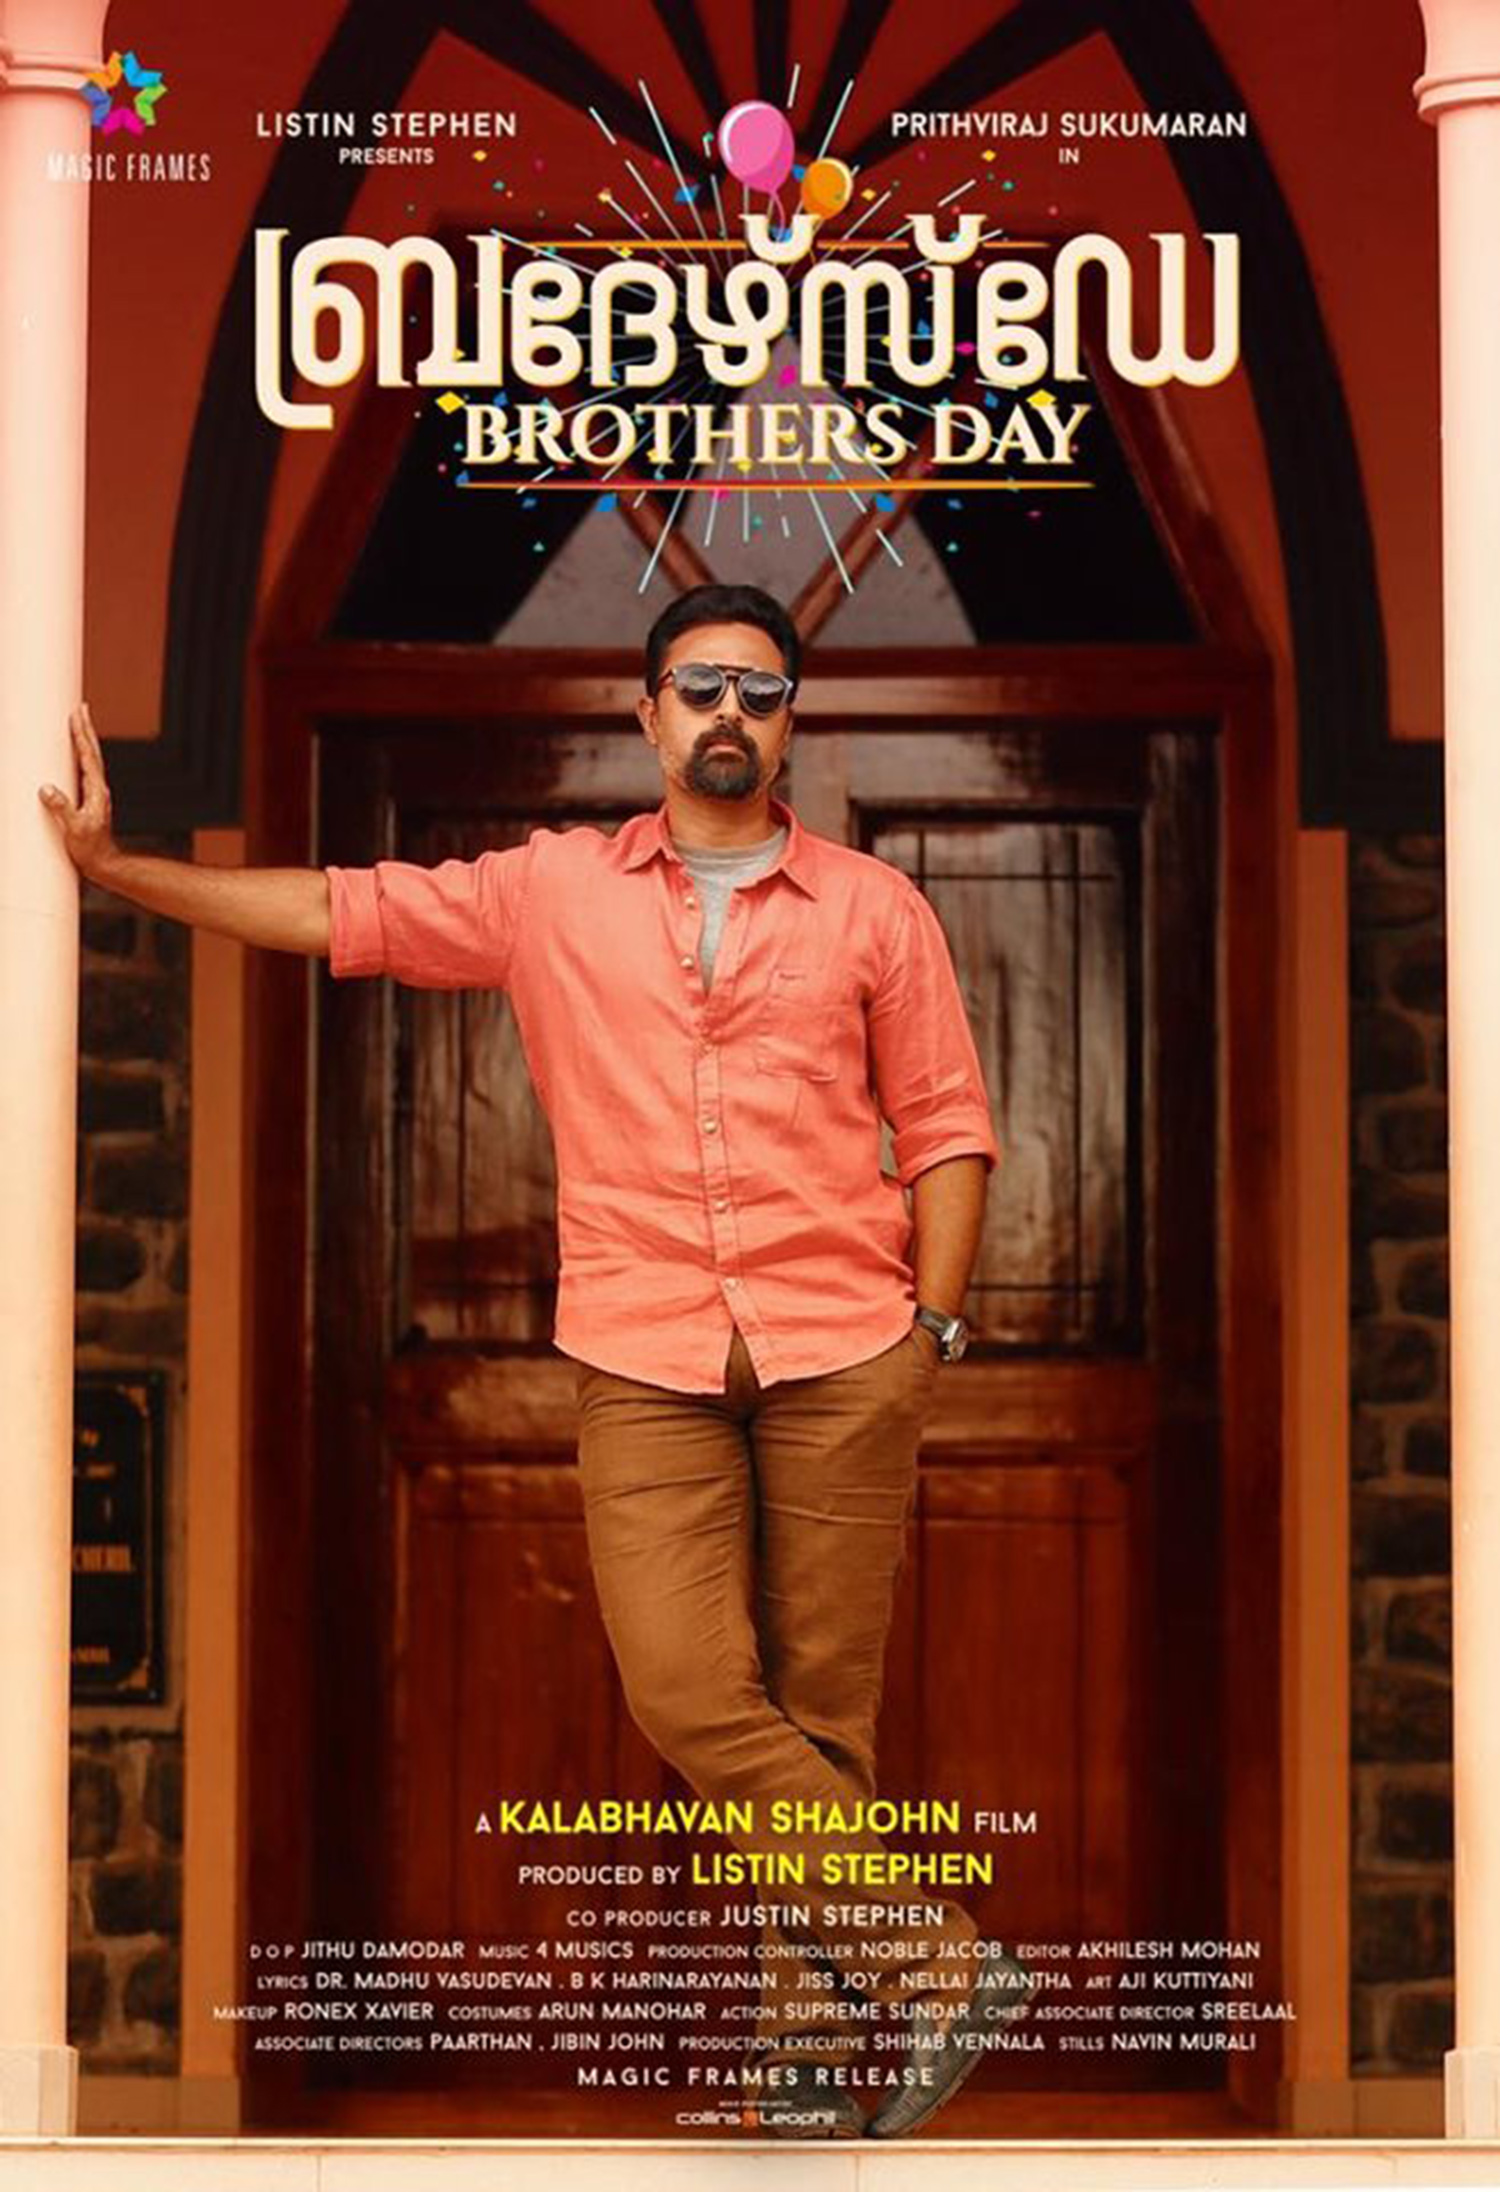 Brother's Day,Tamil actor Prasanna,actor Prasanna,prithviraj brothers day villain,prasannan in prithviraj brothers day,actor prasanna malayalam film,prithviraj's brothers day updates,kalabhavan shajohn